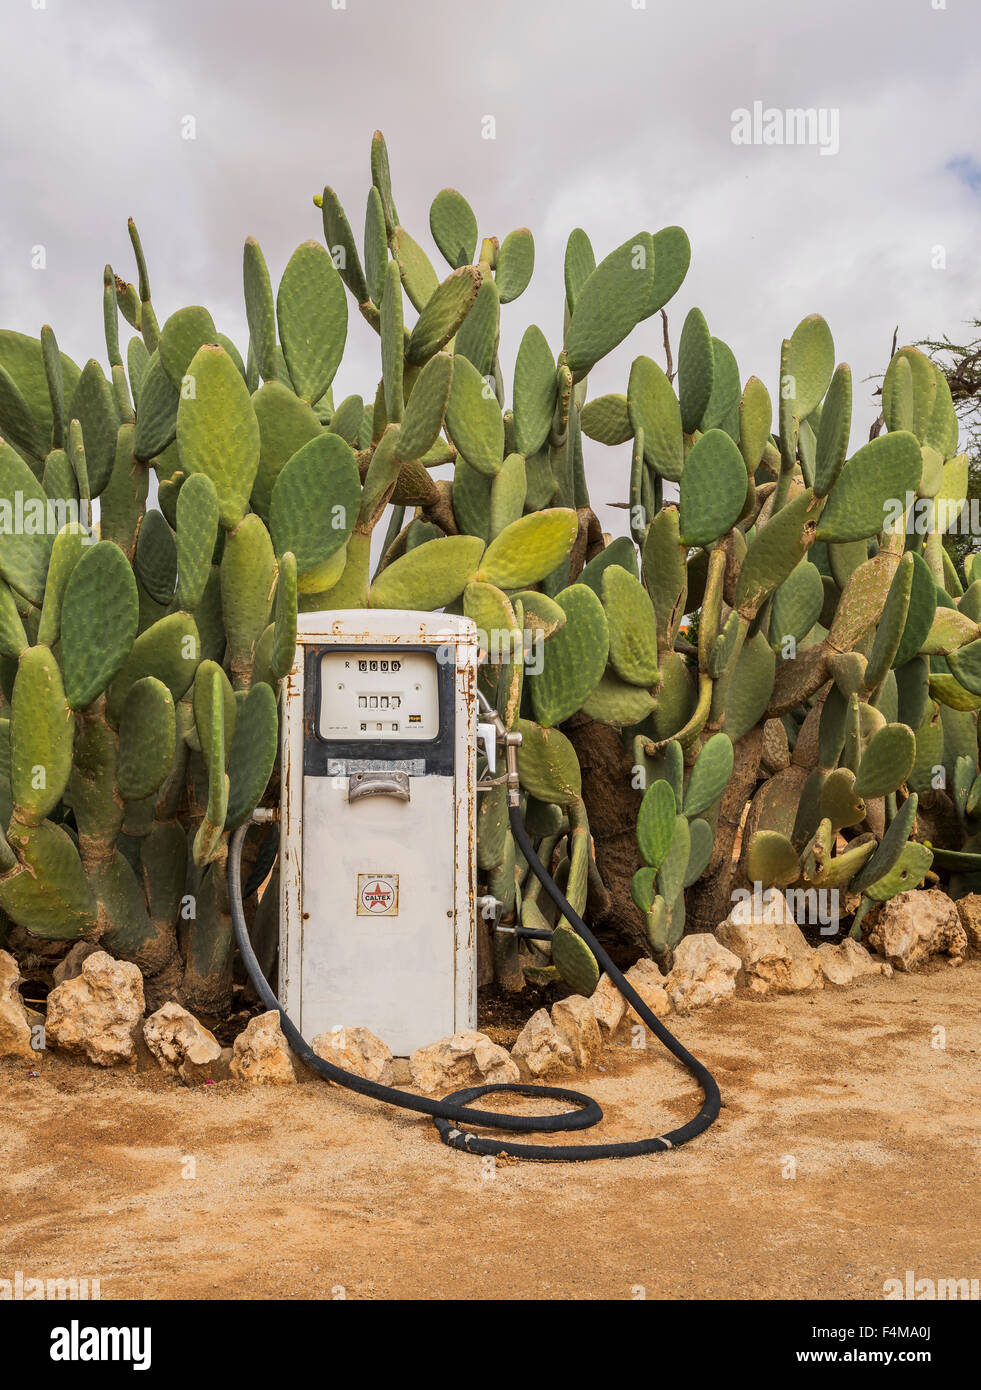 Gas pump and cactus, Solitaire, a small settlement in the Khomas Region of central Namibia, Africa